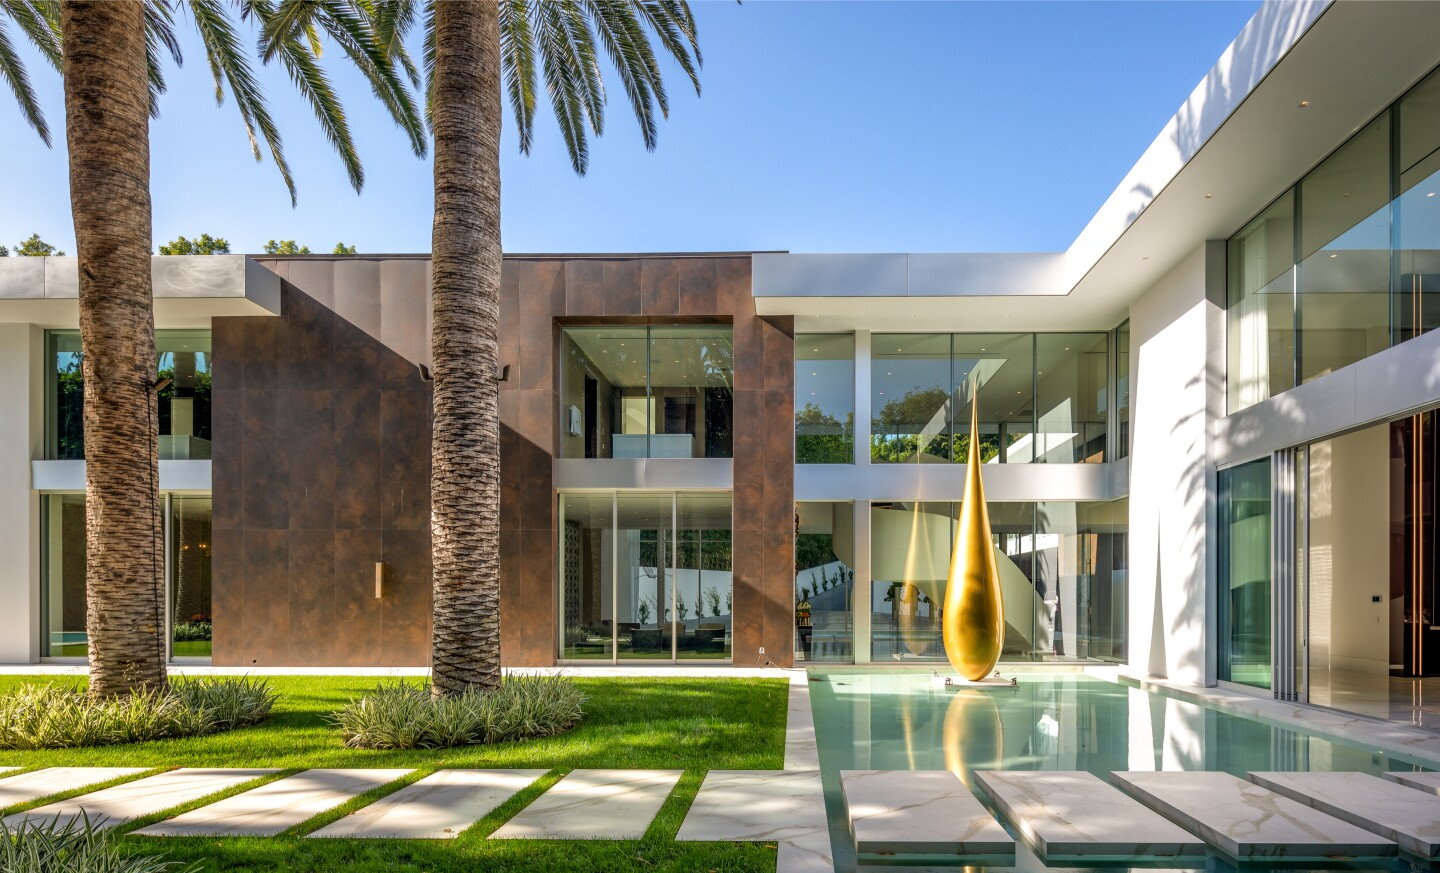 Spanning two acres, the gated property holds a nearly 30,000-square-foot mansion, a 160-foot pool and a 30-foot water wall.